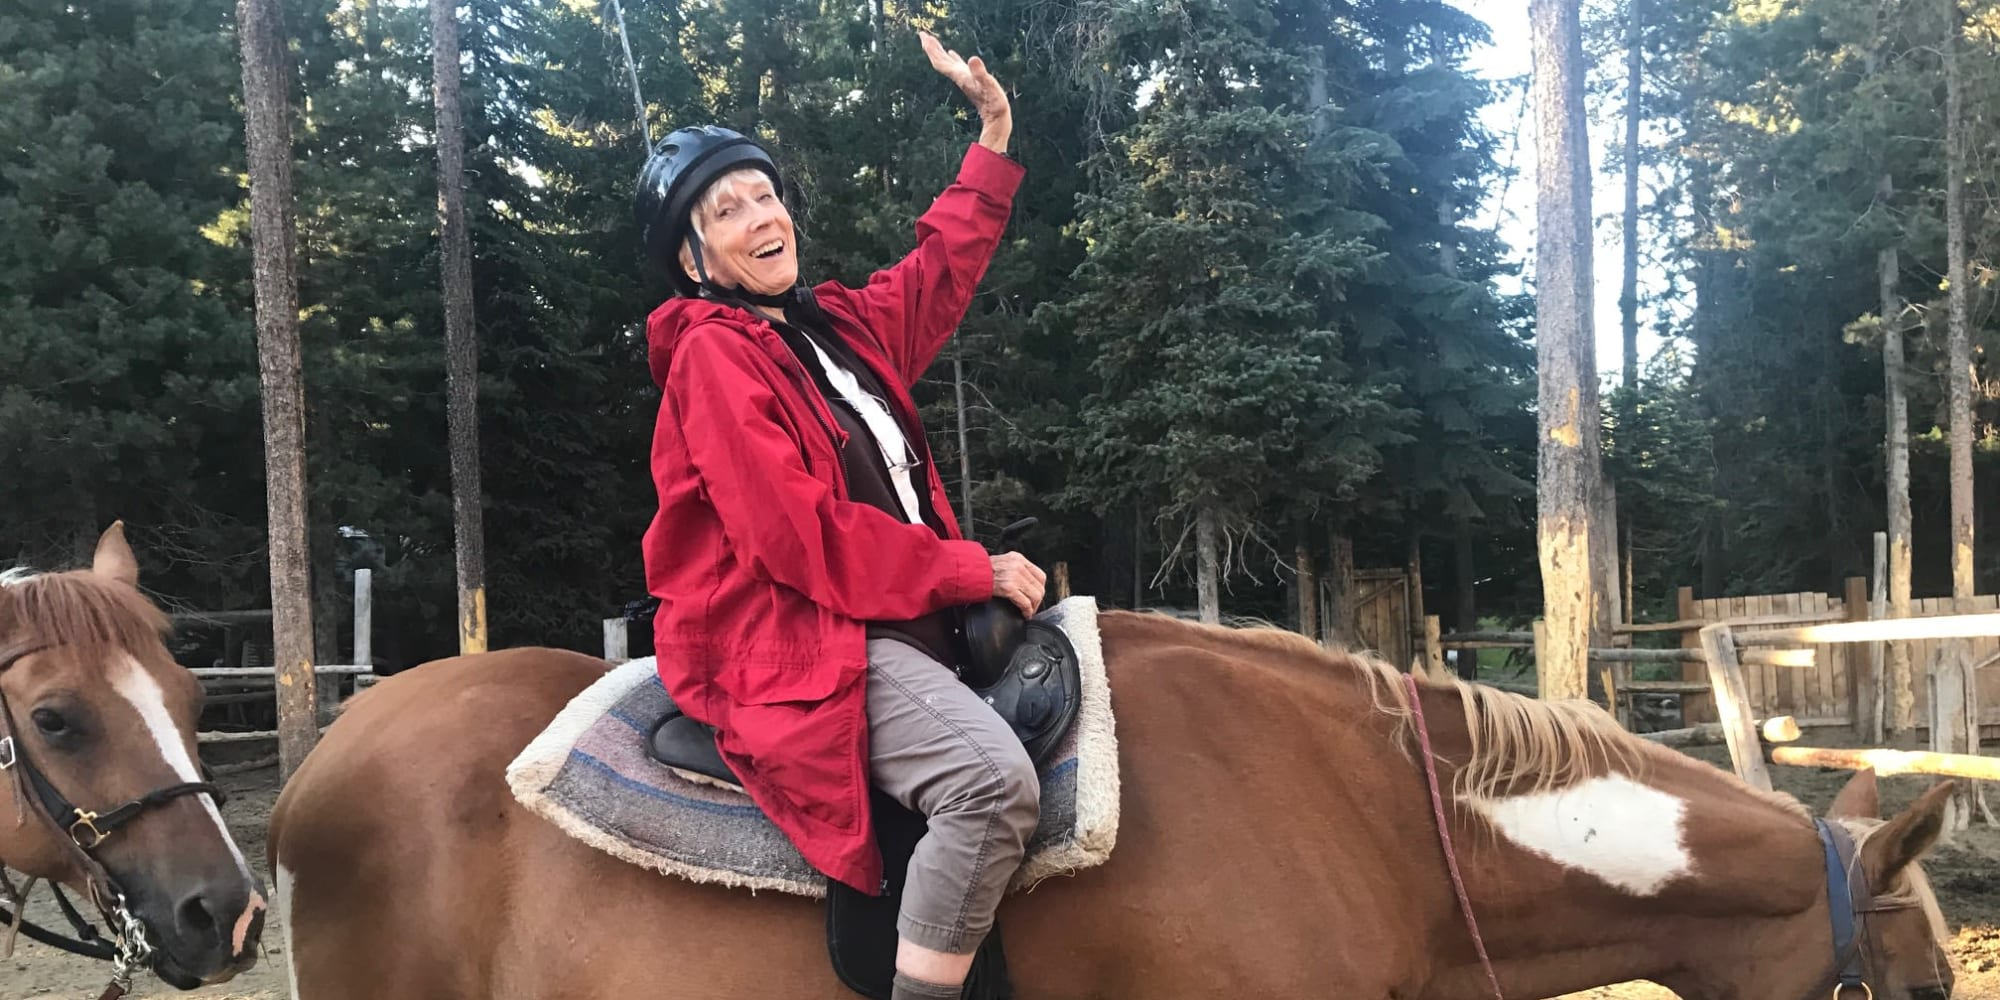 A resident from Hudson Estates Gracious Retirement Living in Lansdale, Pennsylvania riding a horse